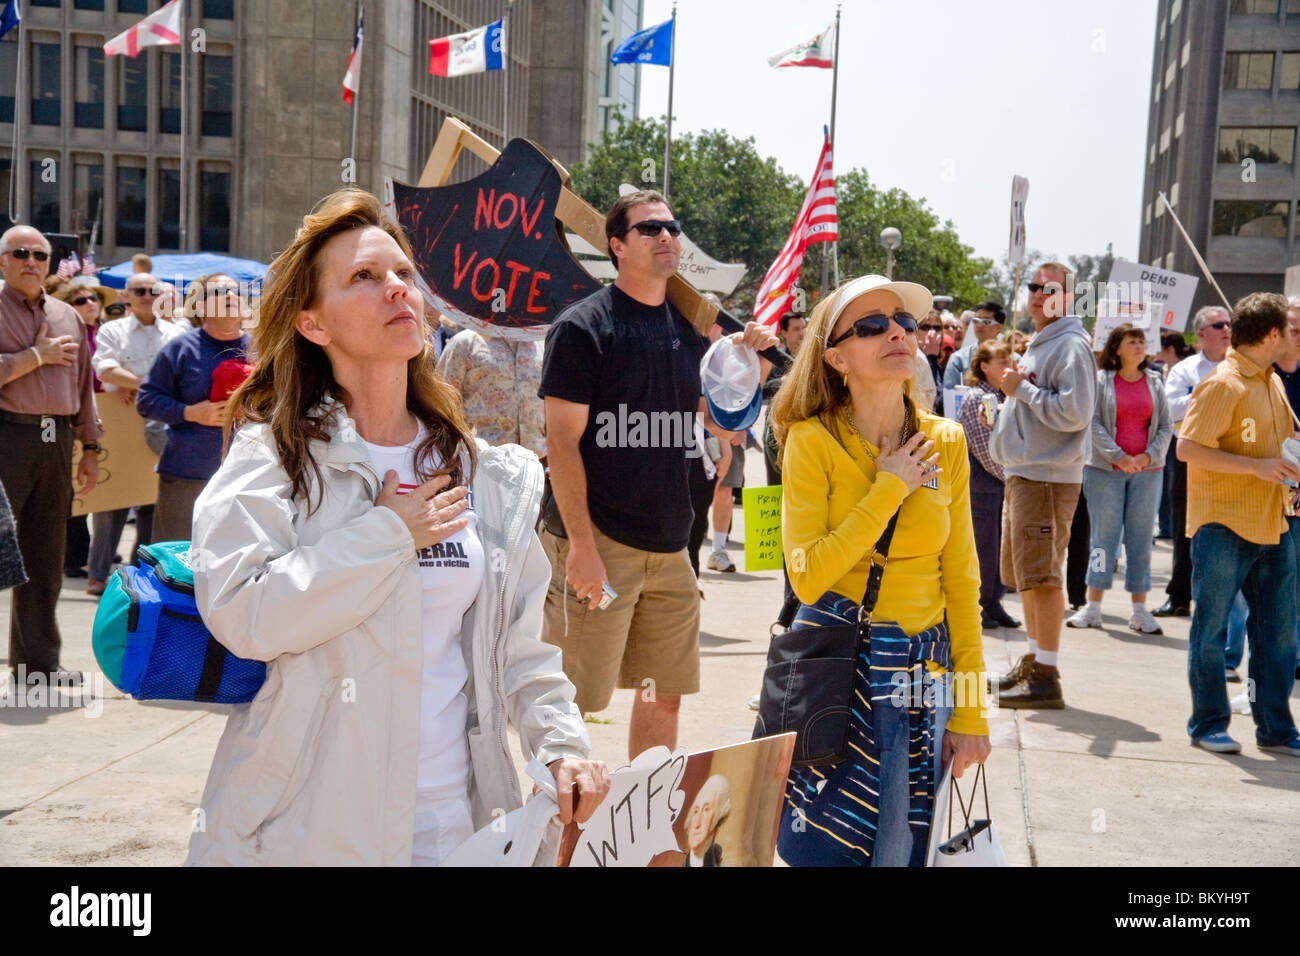 Anti-government protesters recite the Pledge of Allegiance at a 'Tea Party' rally on April 15 (Tax Day) - Stock Image